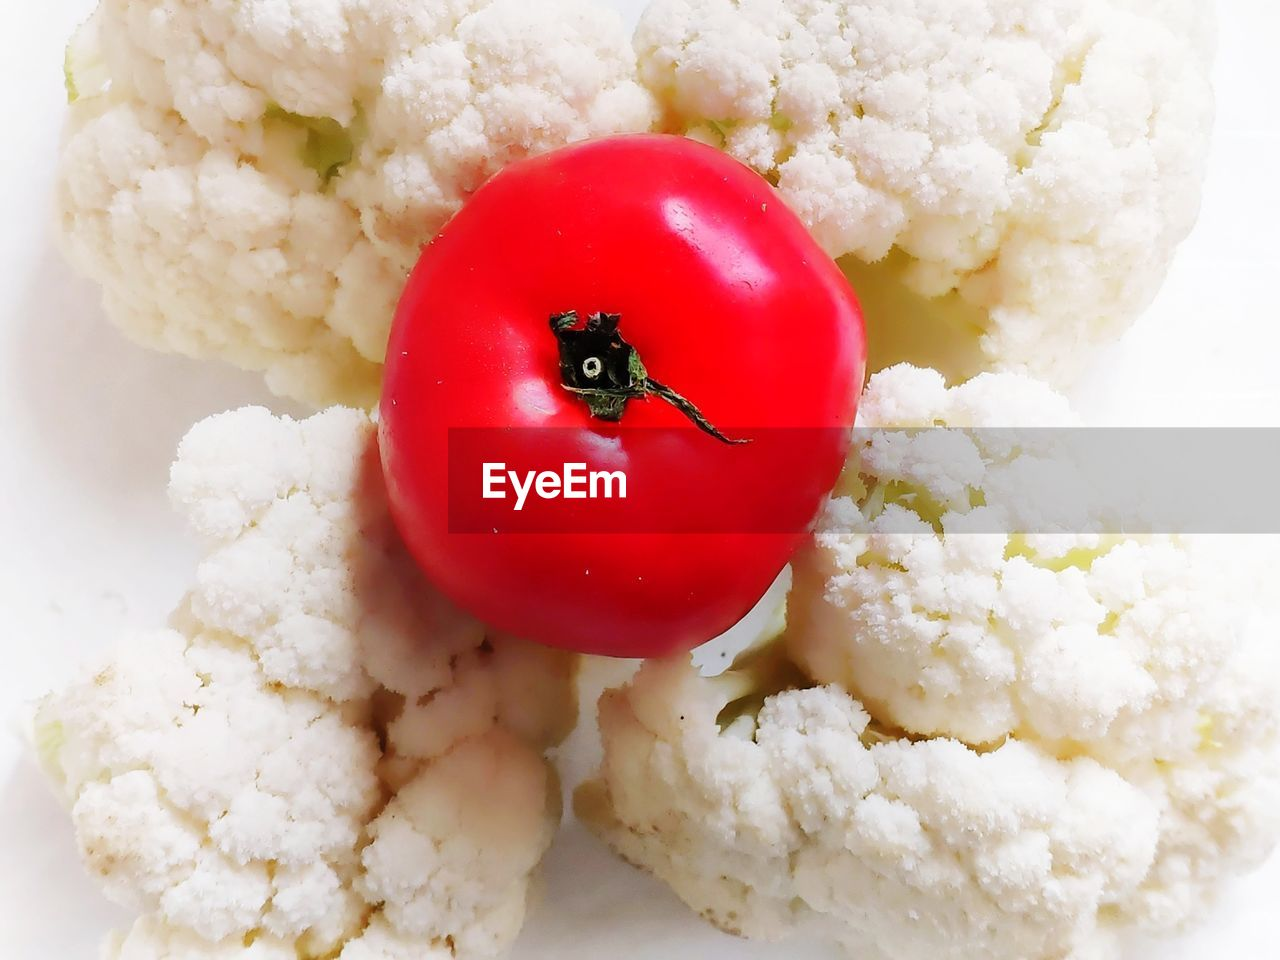 vegetable, healthy eating, freshness, food, food and drink, close-up, red, tomato, wellbeing, indoors, no people, fruit, cauliflower, still life, white color, rice - food staple, ingredient, ready-to-eat, cherry tomato, cereal plant, vegetarian food